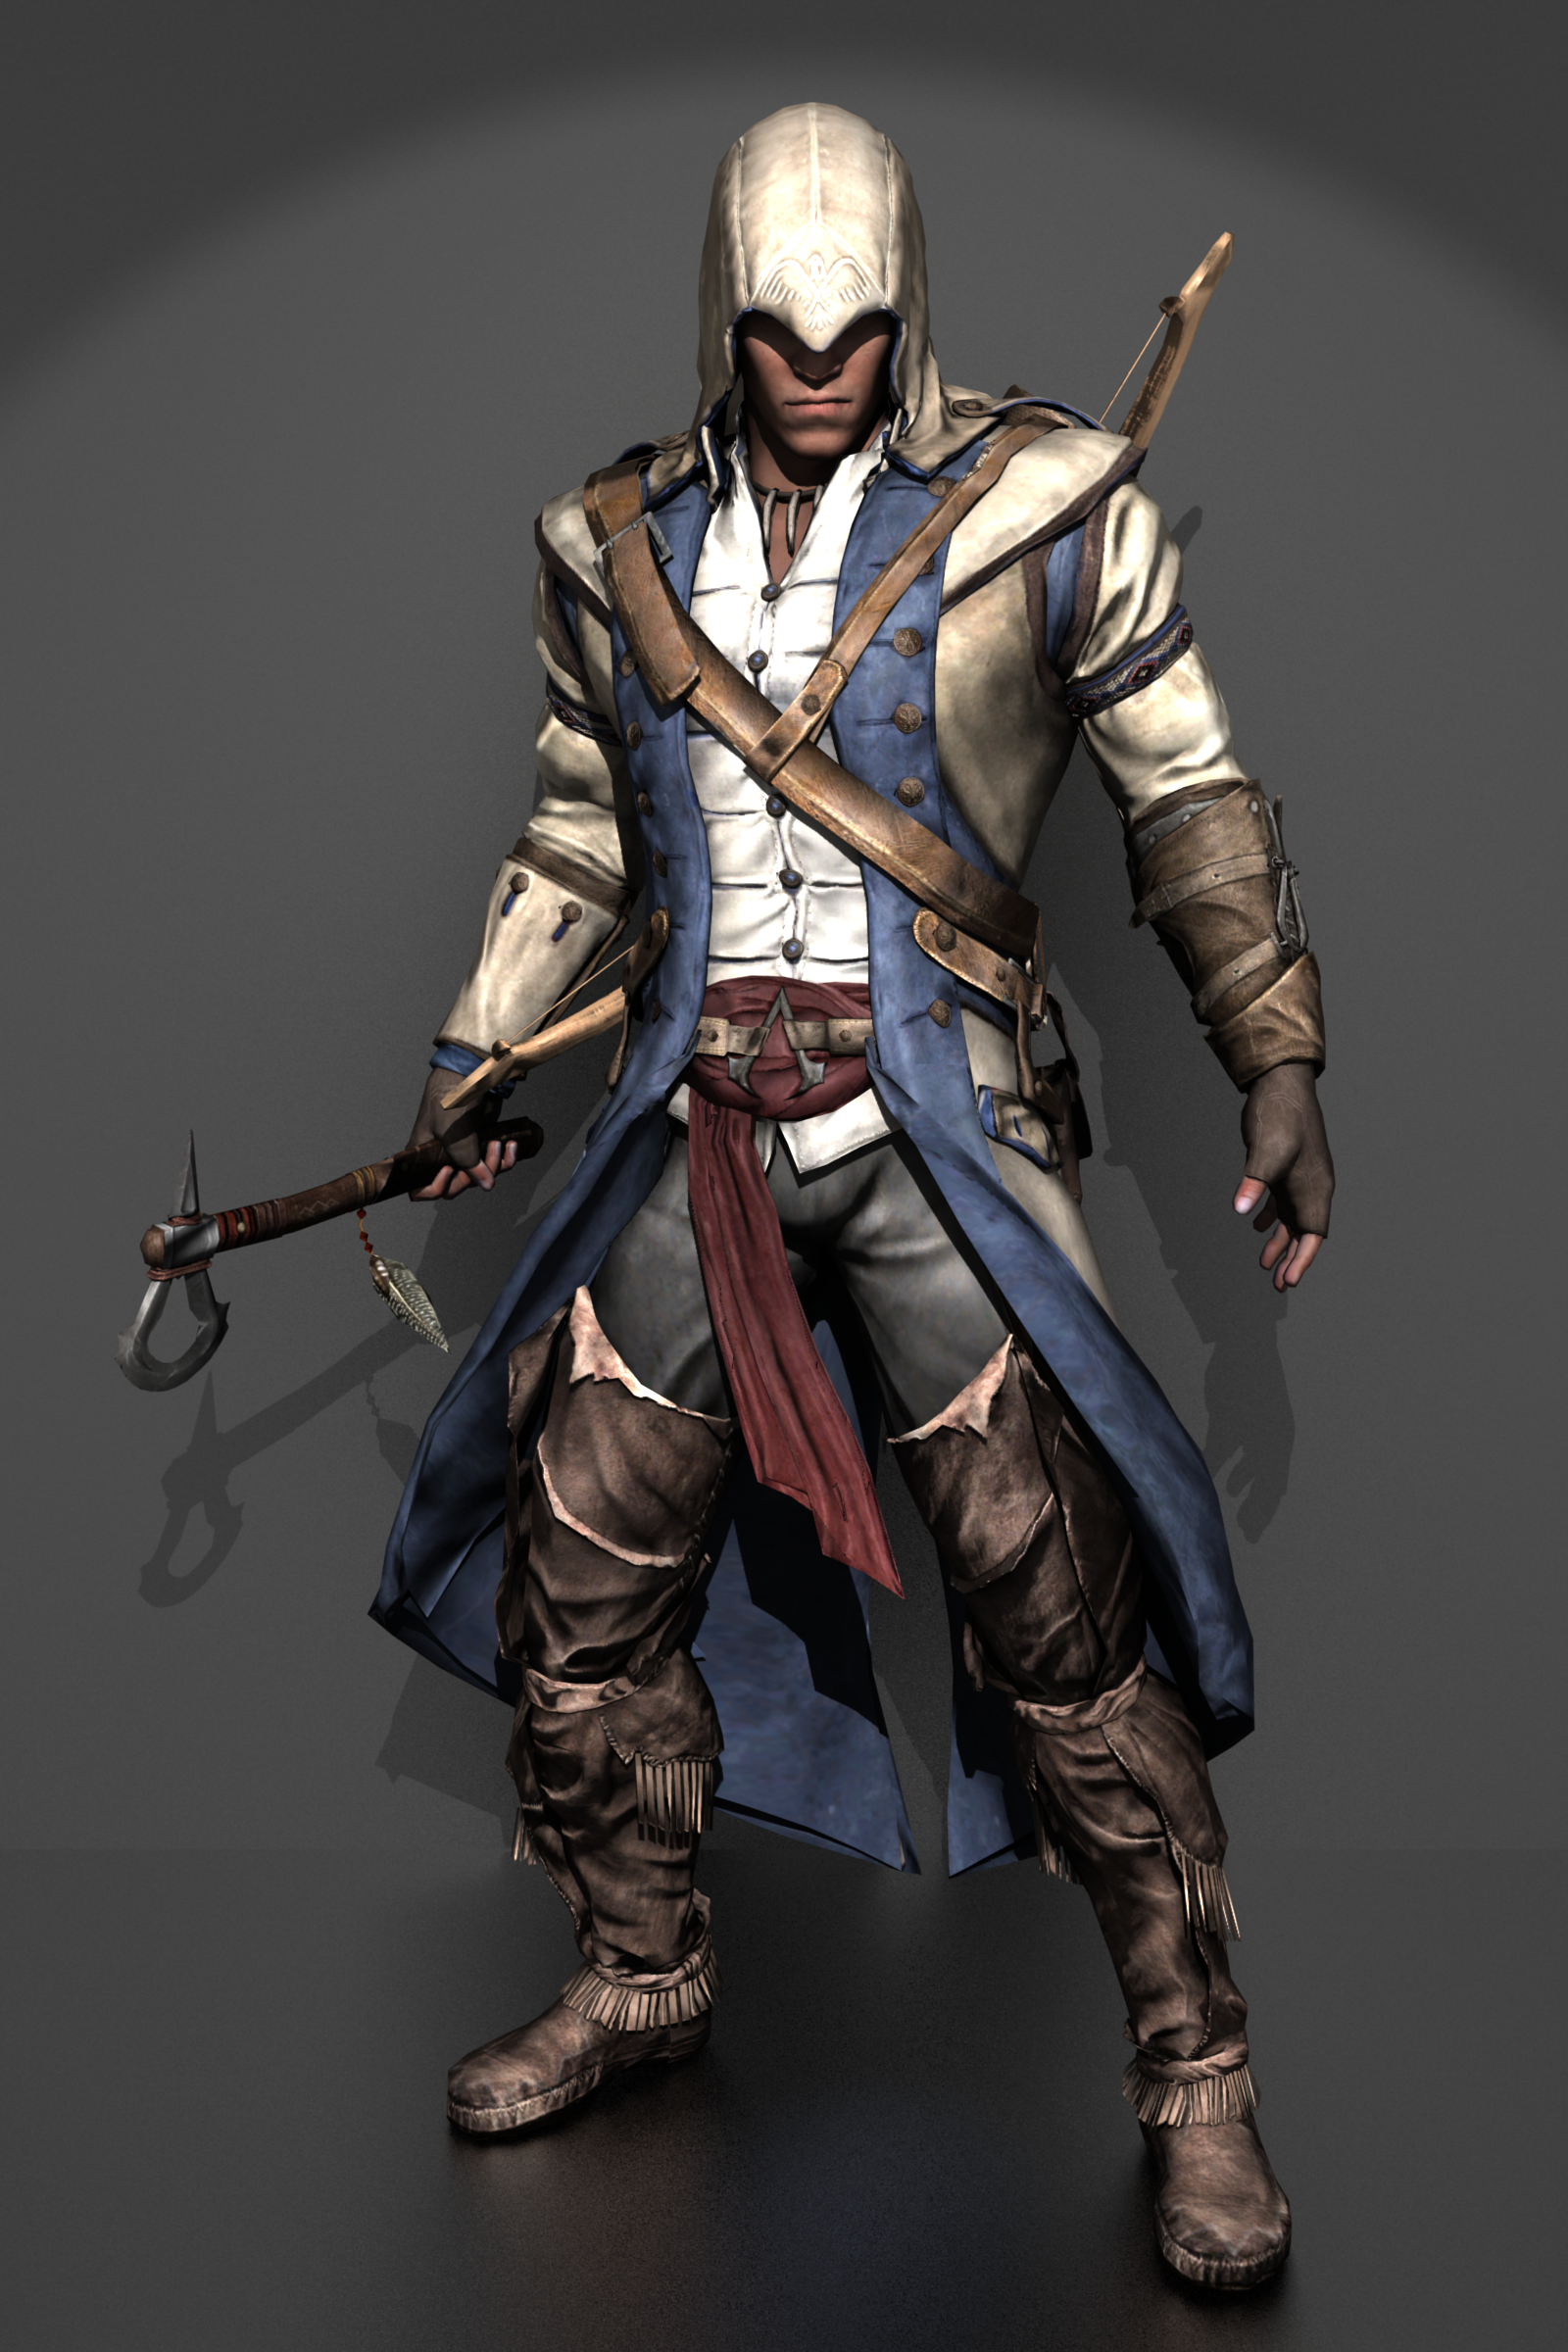 pin connor kenway on pinterest